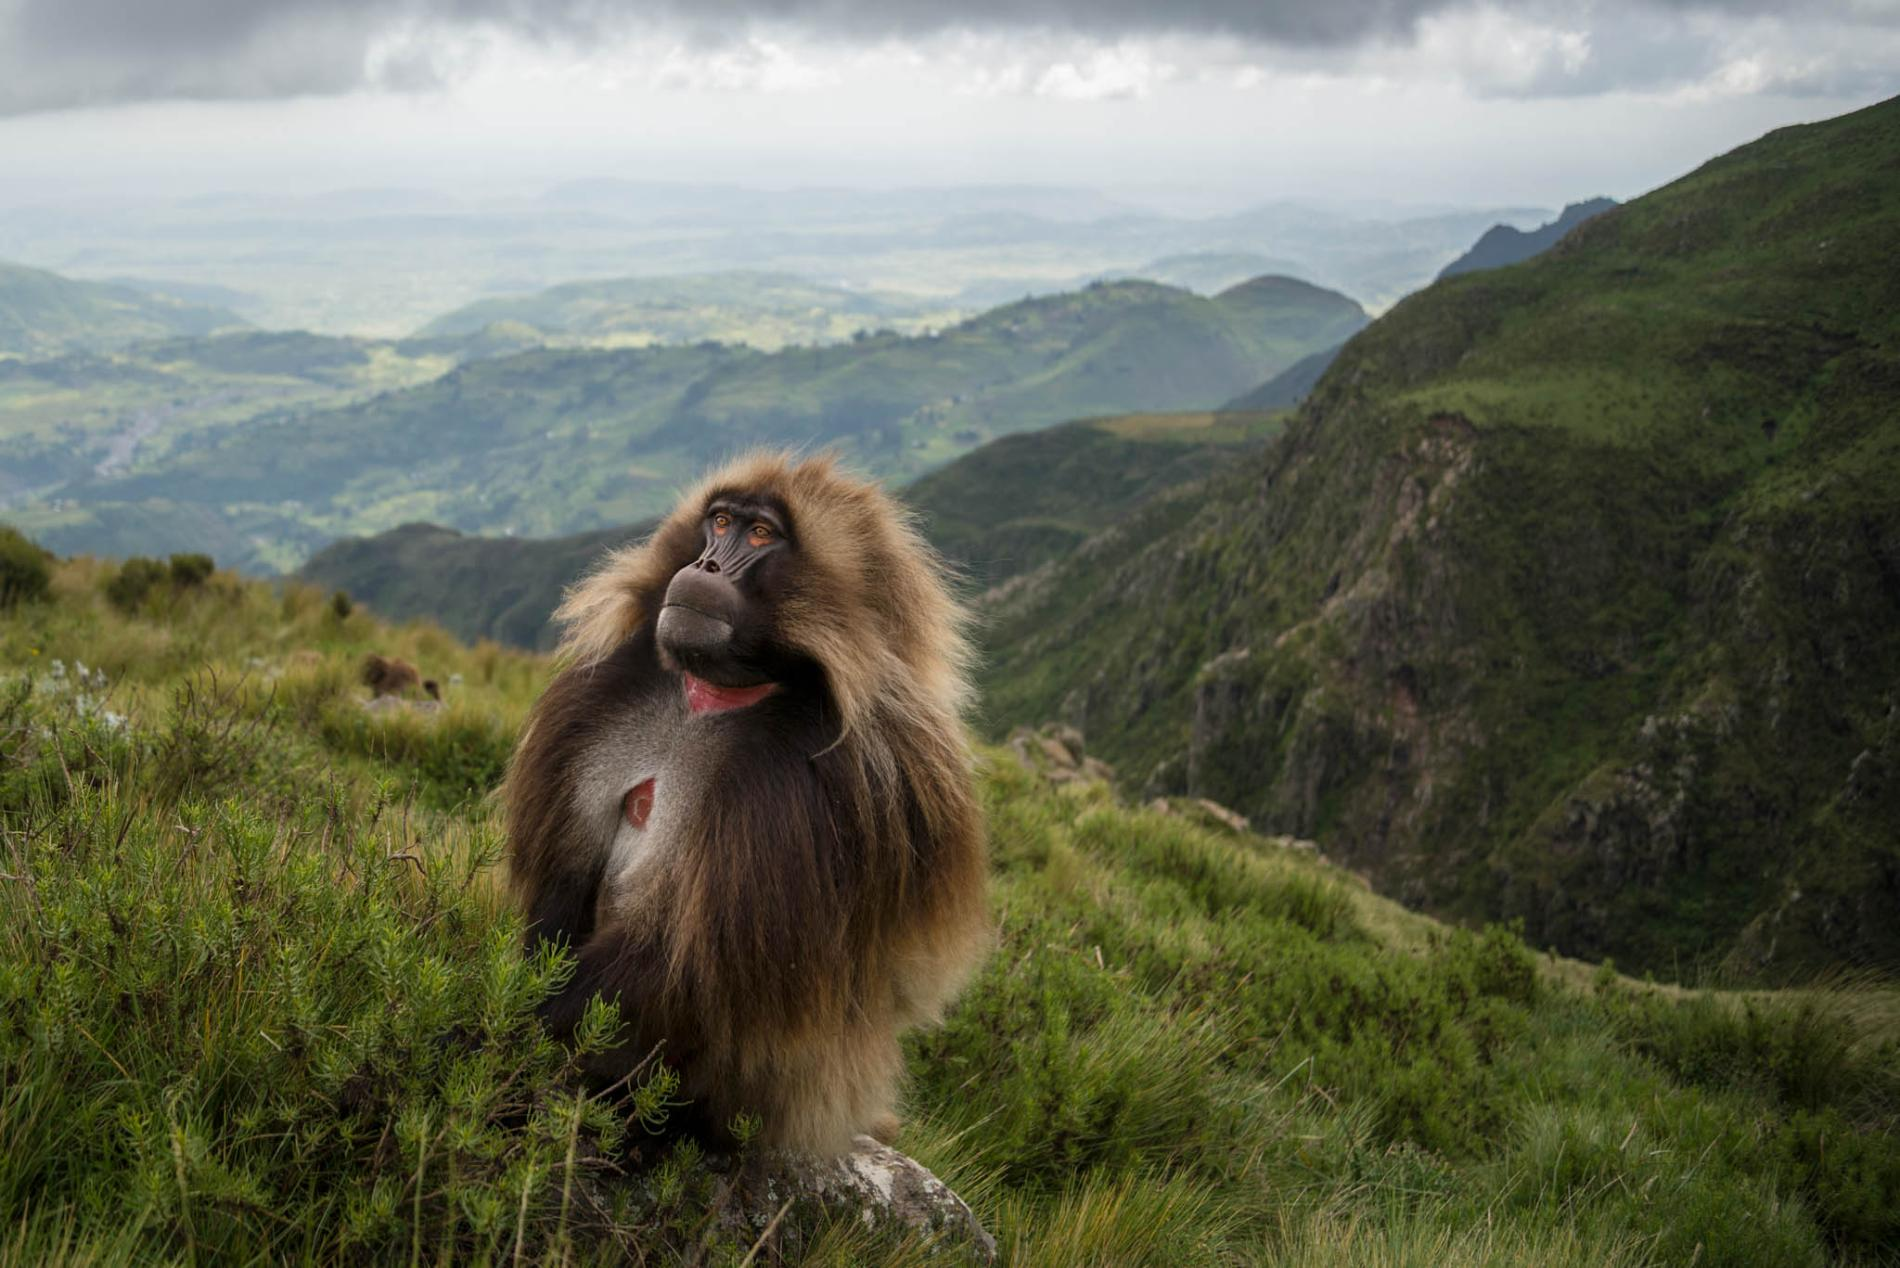 11-gelada-baboons-monkey-shaggy-cliff-rift-valley-ethiopia-highlands.ngsversion.1489164407523.adapt.1900.1